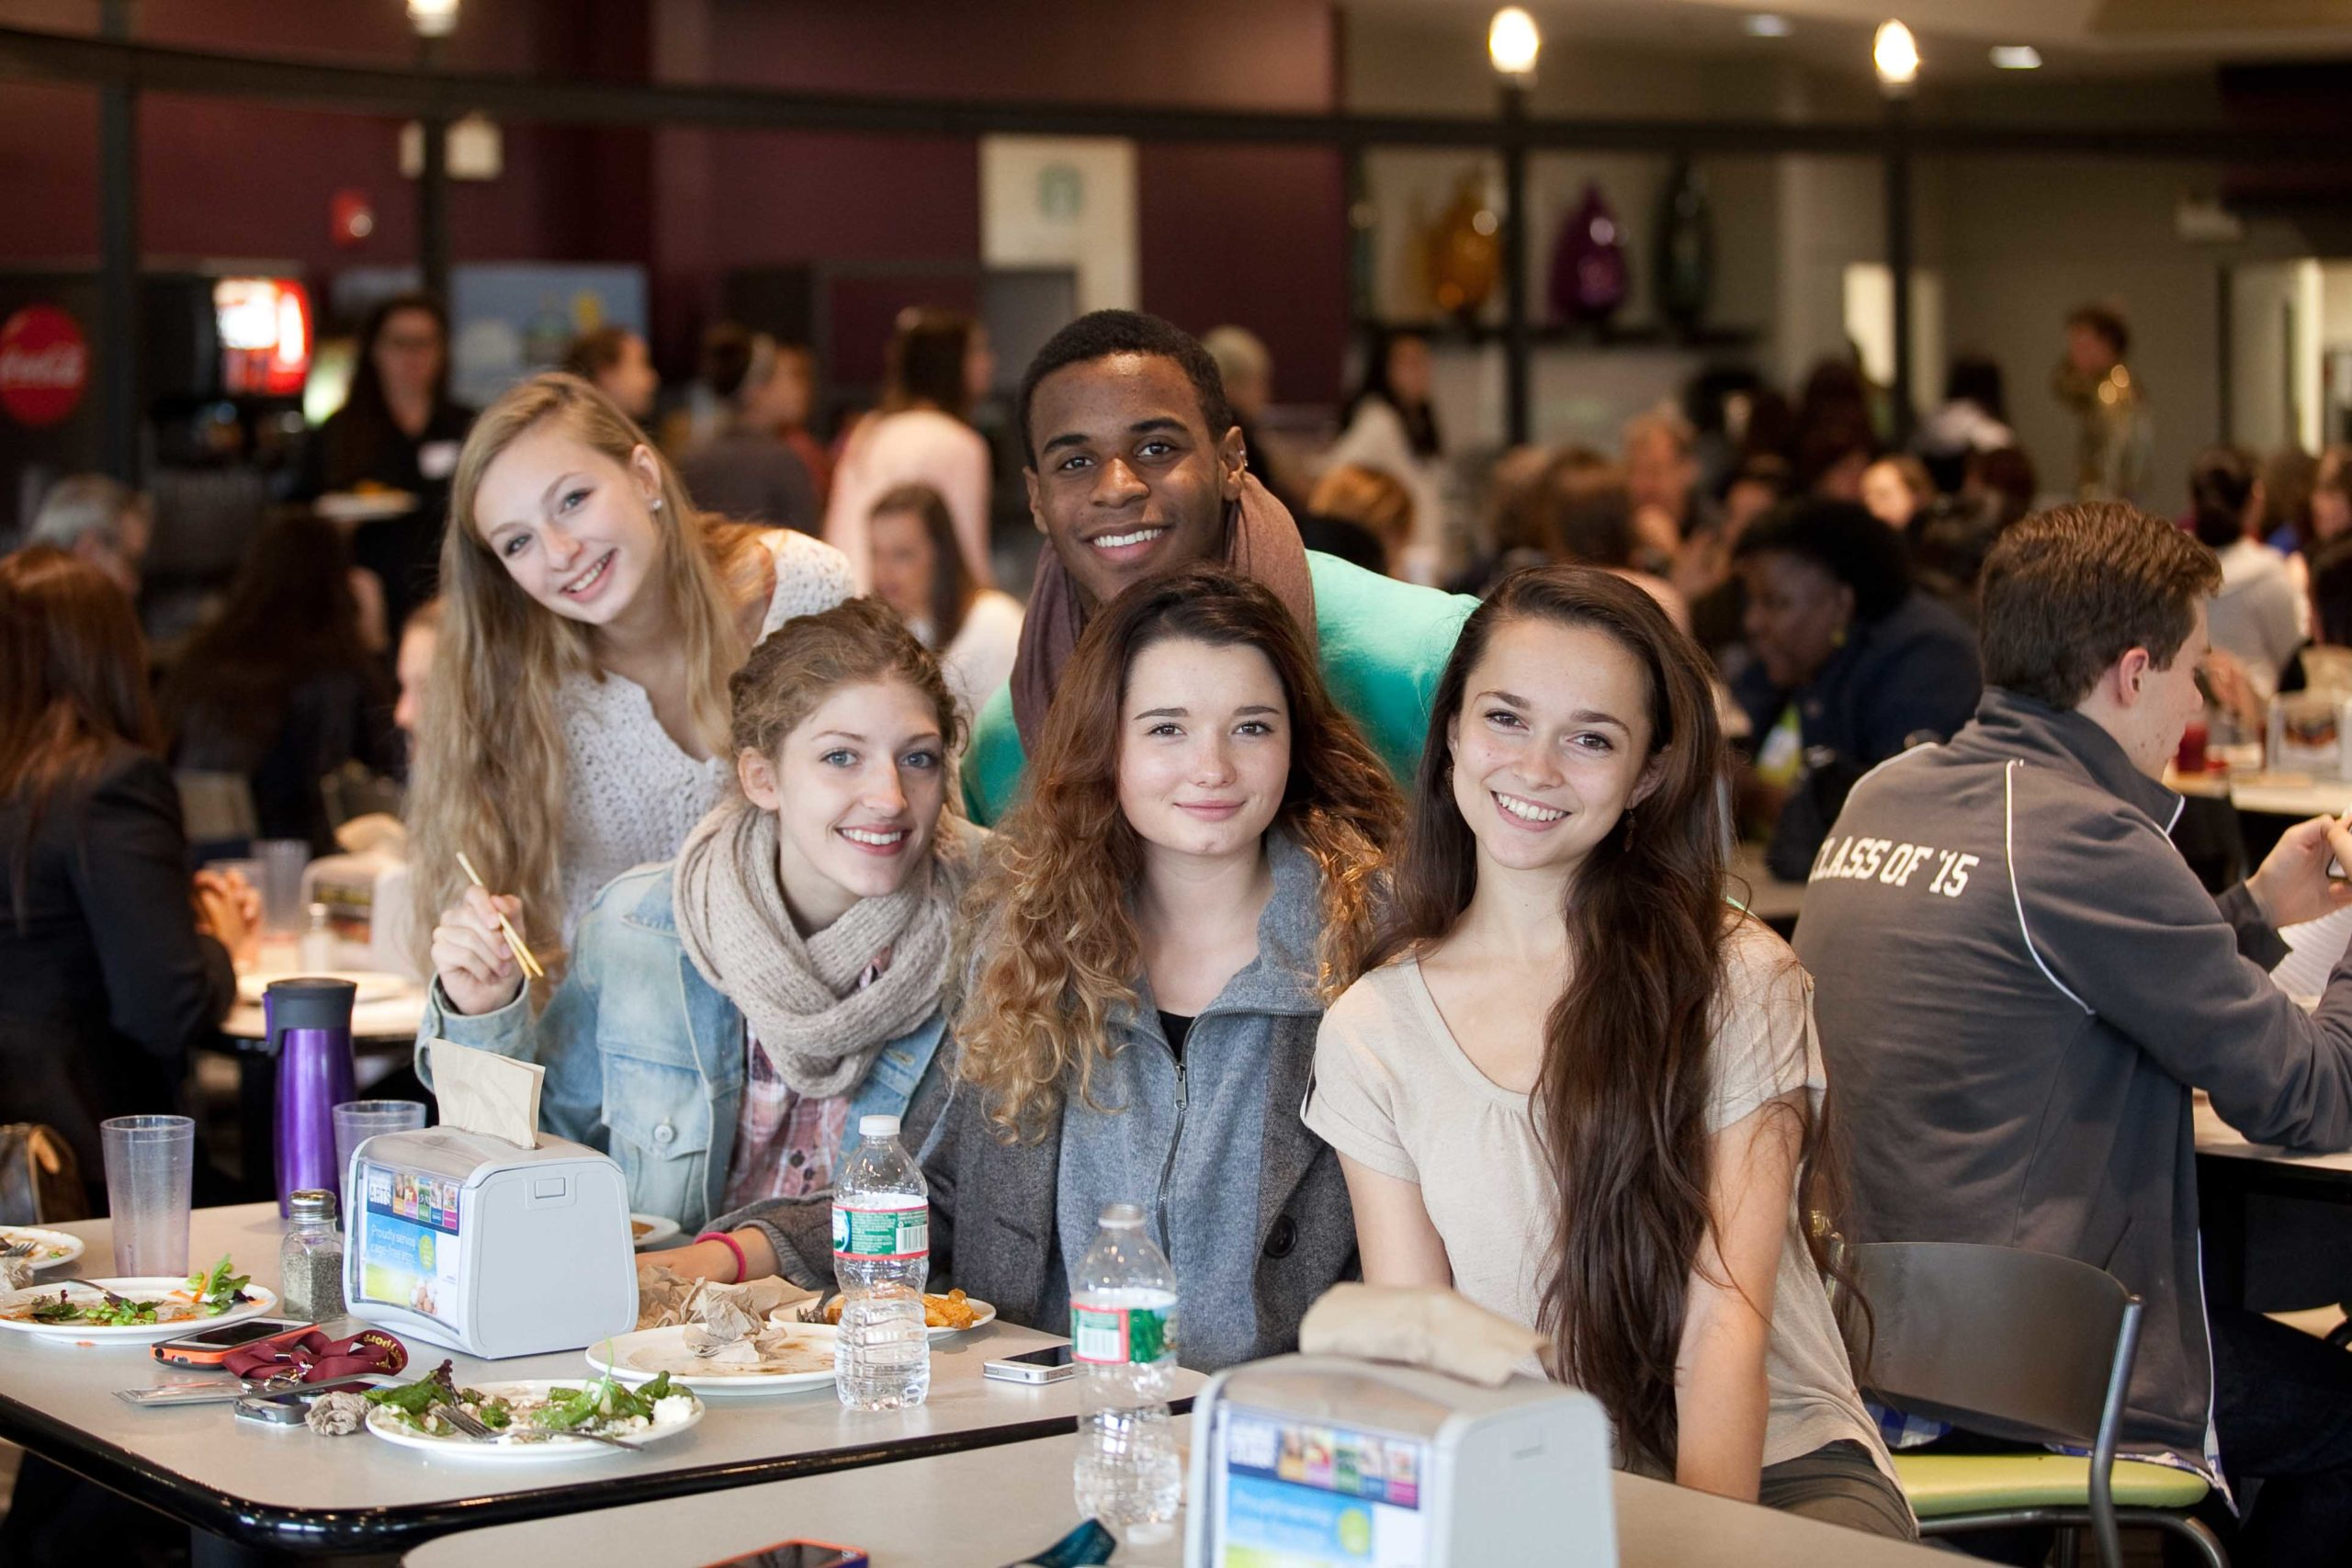 Young people posing for a picture in a cafeteria